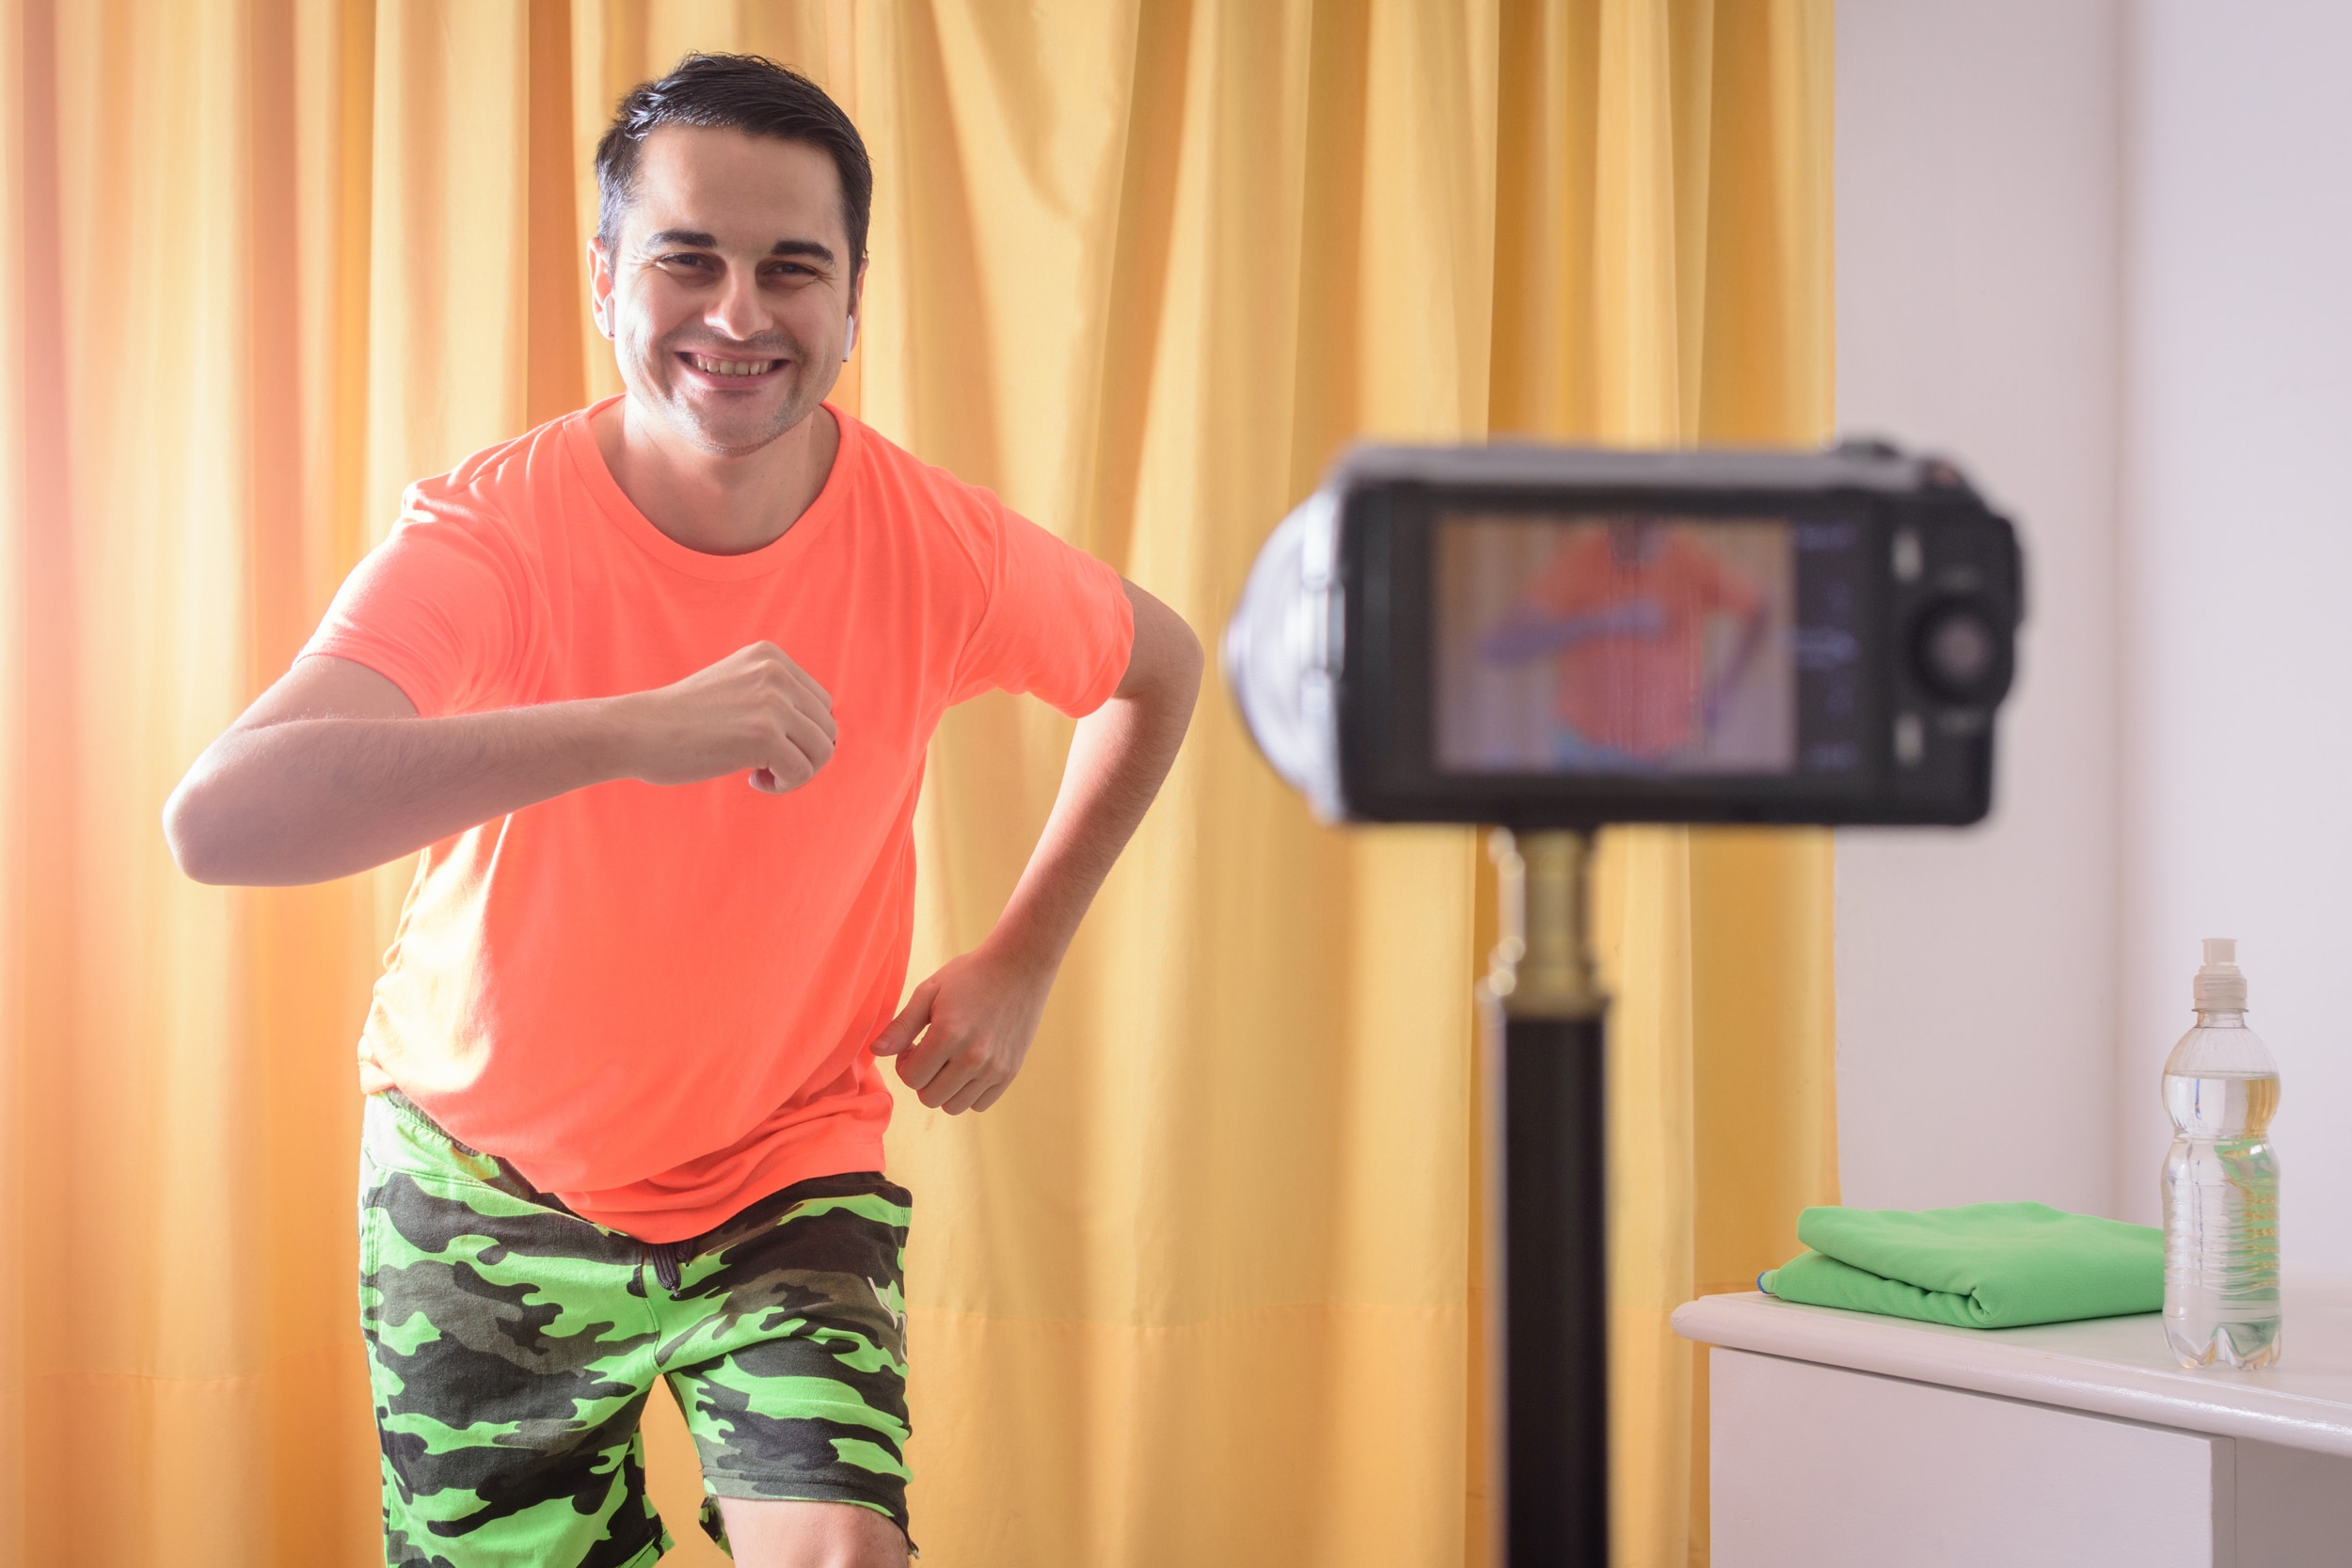 man-performing-in-front-of-camera